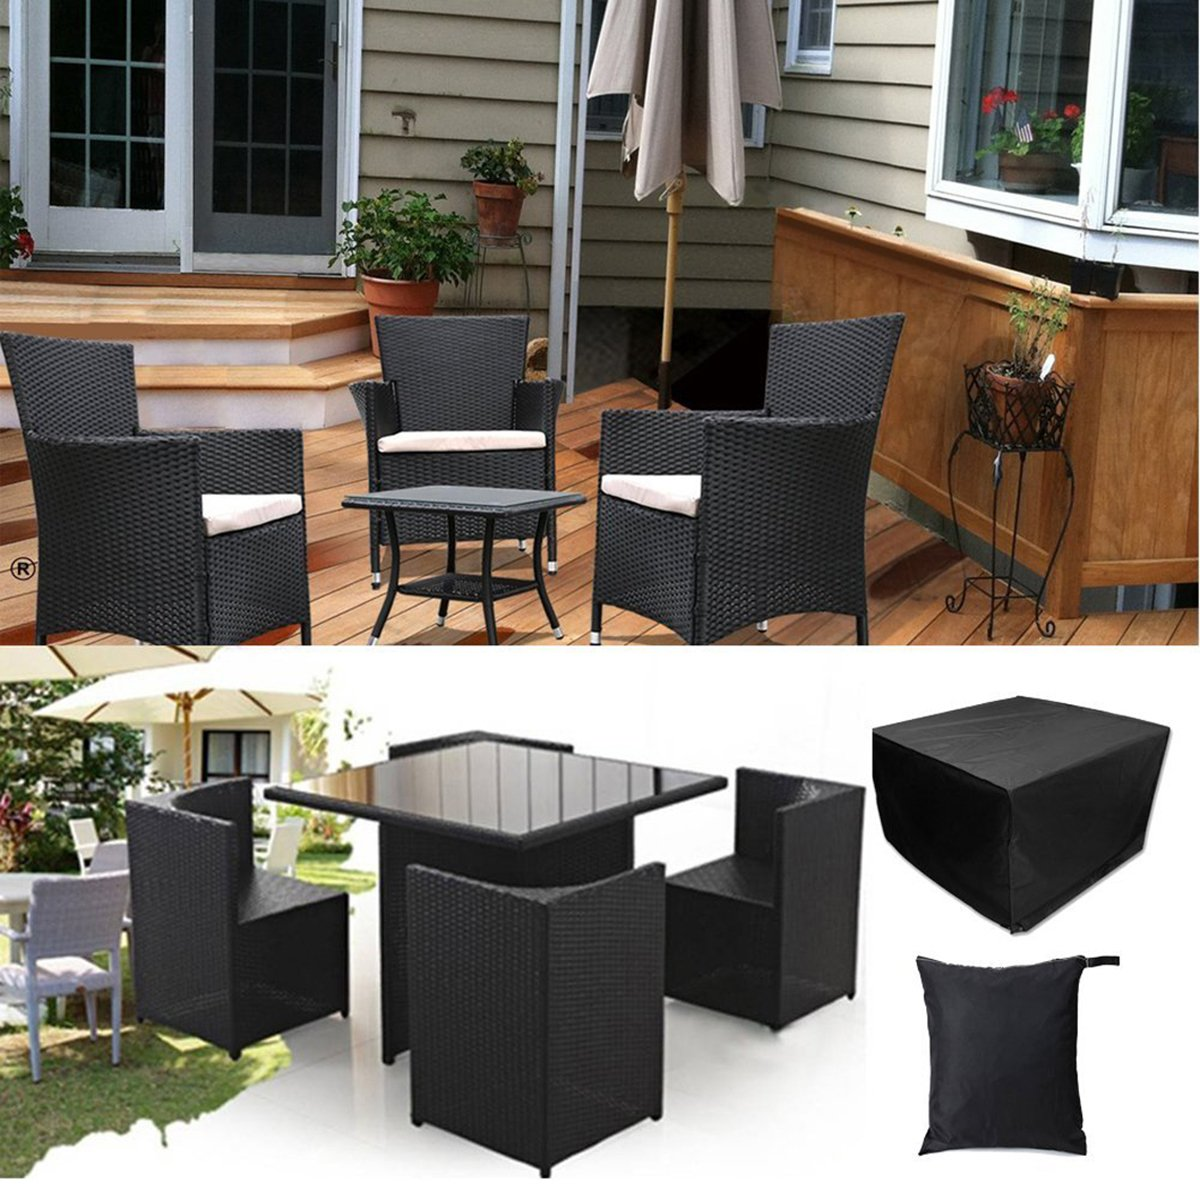 Amazon.com: Fellie Cover Square Patio Table And Chair Set Cover 49 Inch  Waterproof Outdoor Furniture Cover, Durable Patio Table Cover, Black:  Kitchen U0026 ...